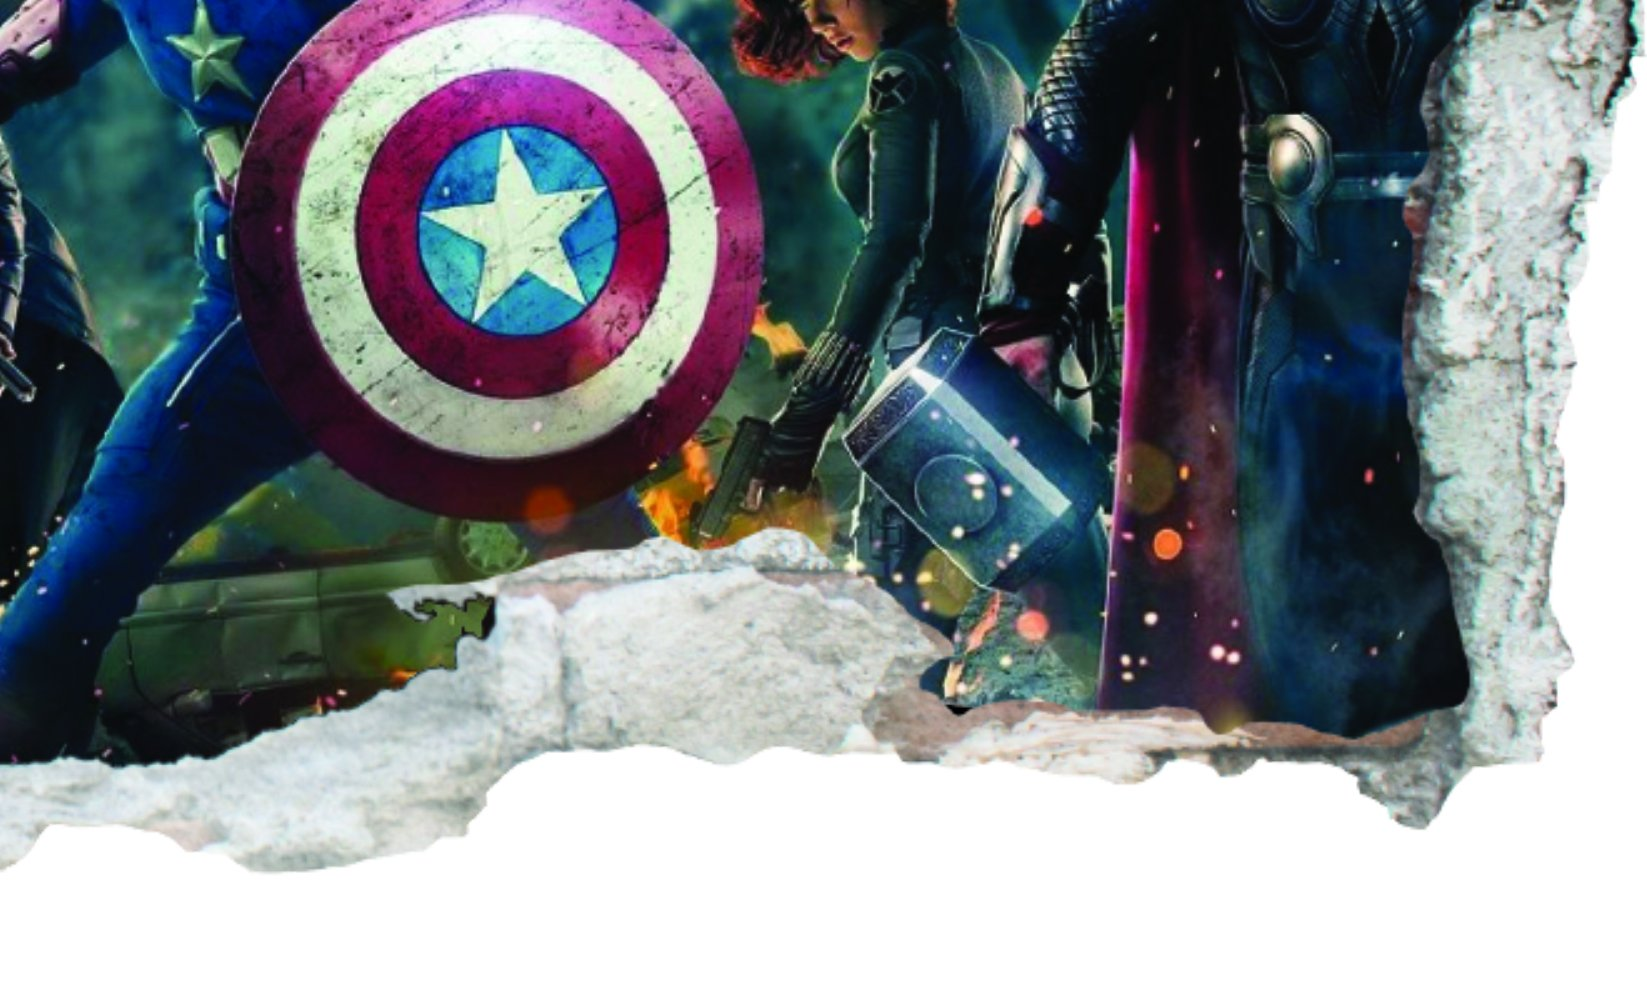 GNG Marvel Avengers Vinyl Smashed Wall Art Decal Stickers Bedroom Boys Girls 3D L by giZmoZ n gadgetZ (Image #3)